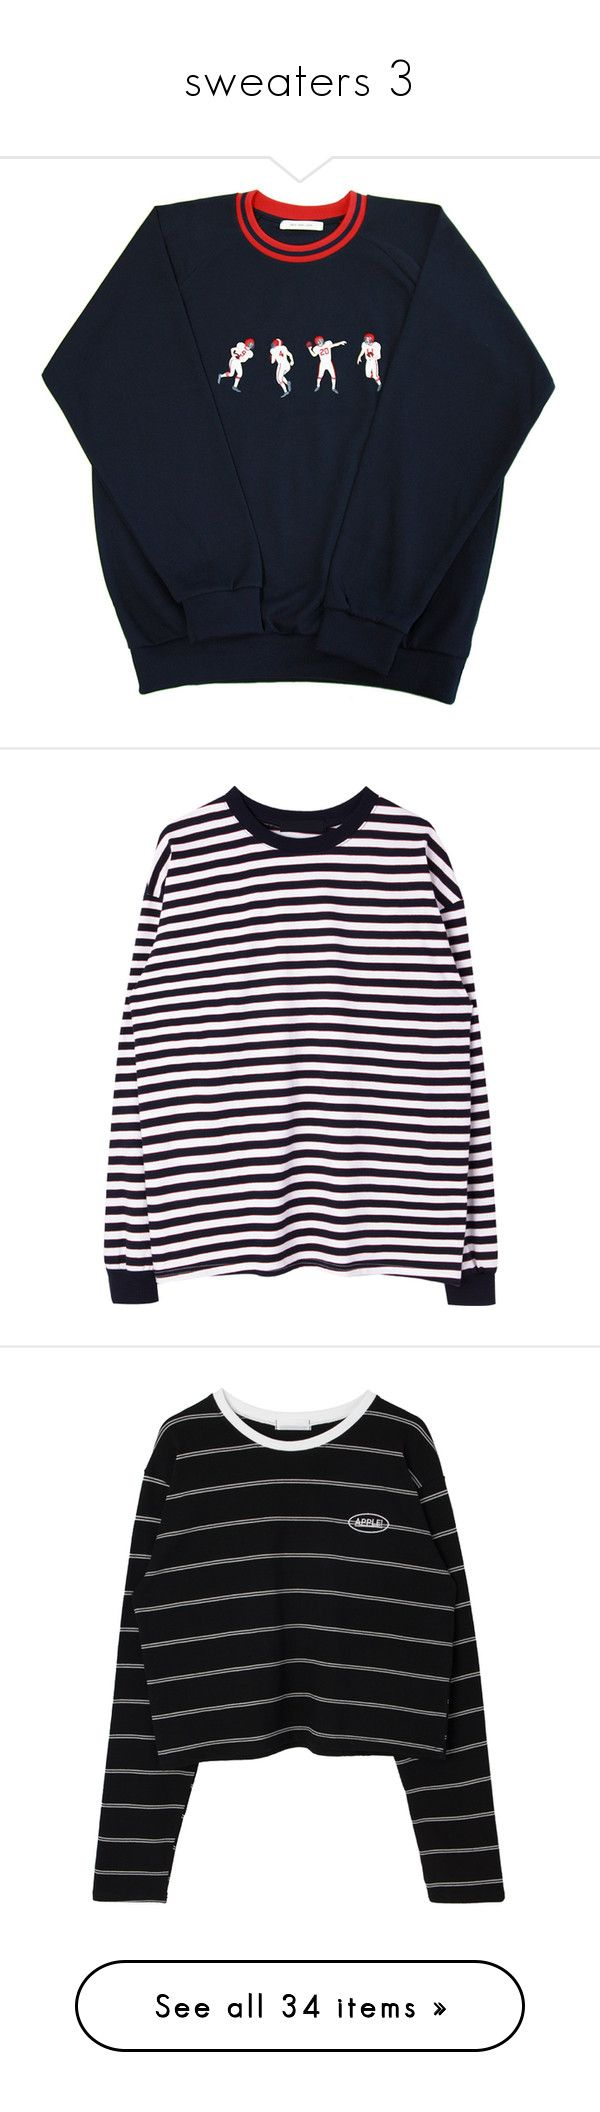 """""""sweaters 3"""" by kassie234 ❤ liked on Polyvore featuring tops, hoodies, sweatshirts, blue top, blue sweatshirt, navy blue top, embroidered sweatshirts, navy sweatshirt, shirts and loose fitting shirts"""